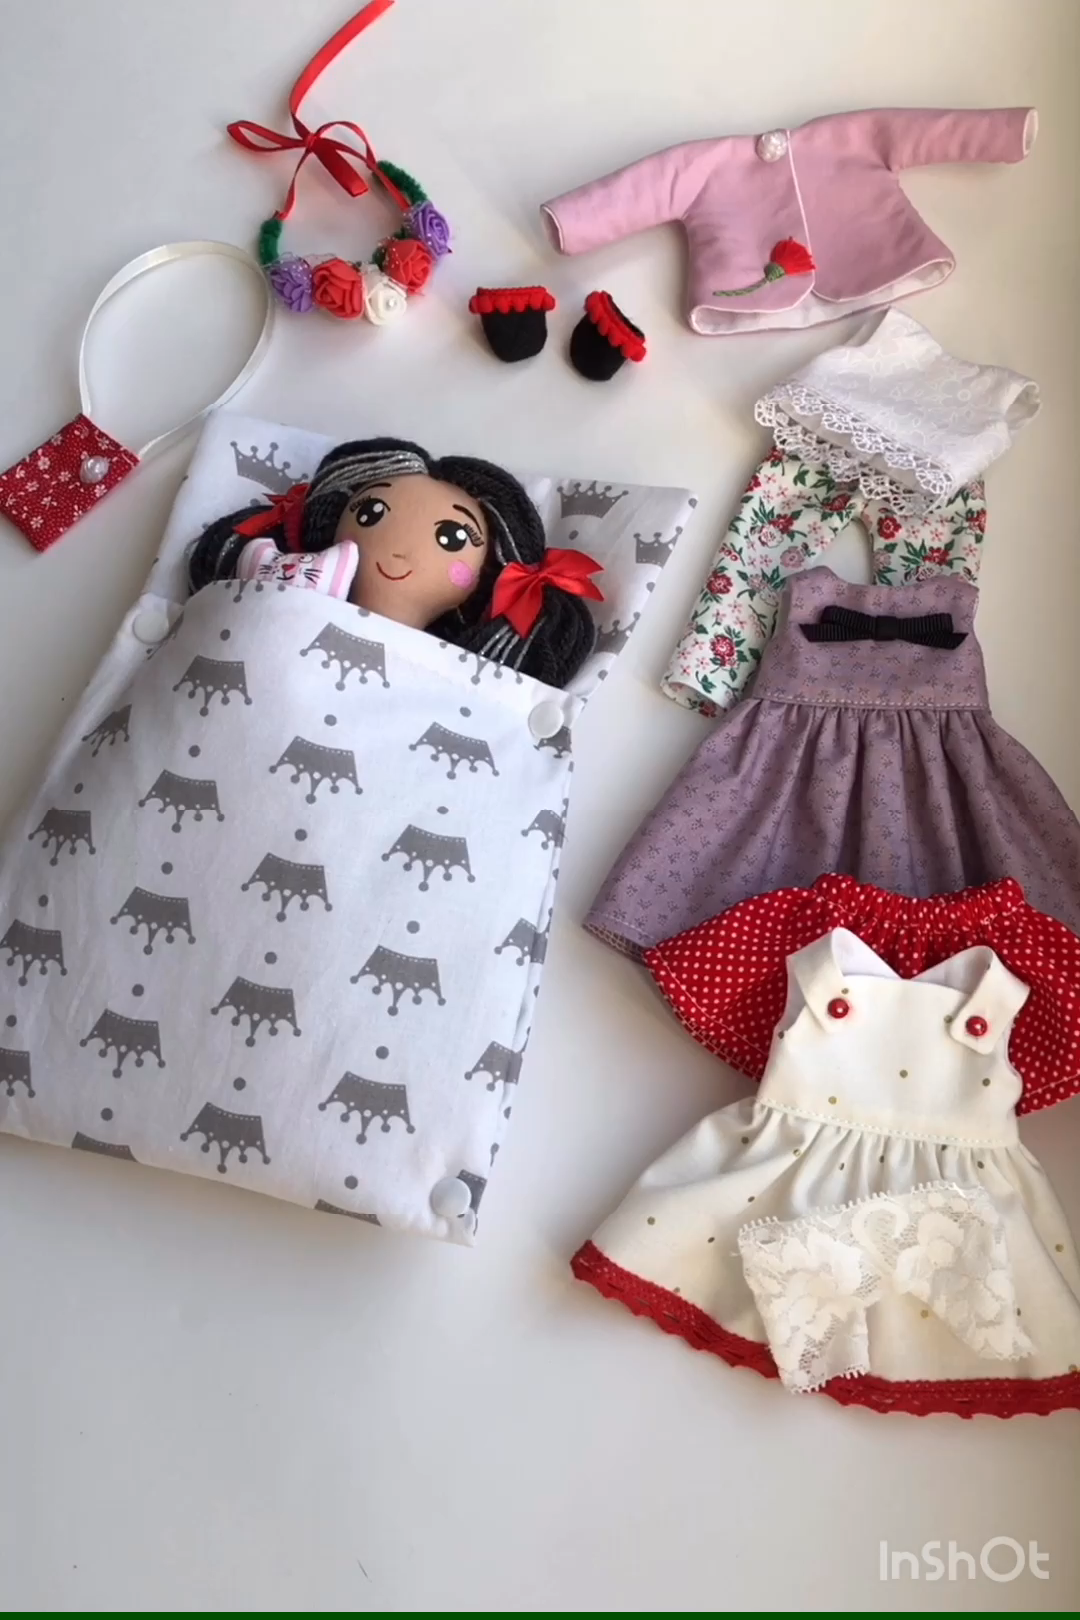 Handmade fabric doll with clothes for girls #miniaturedolls